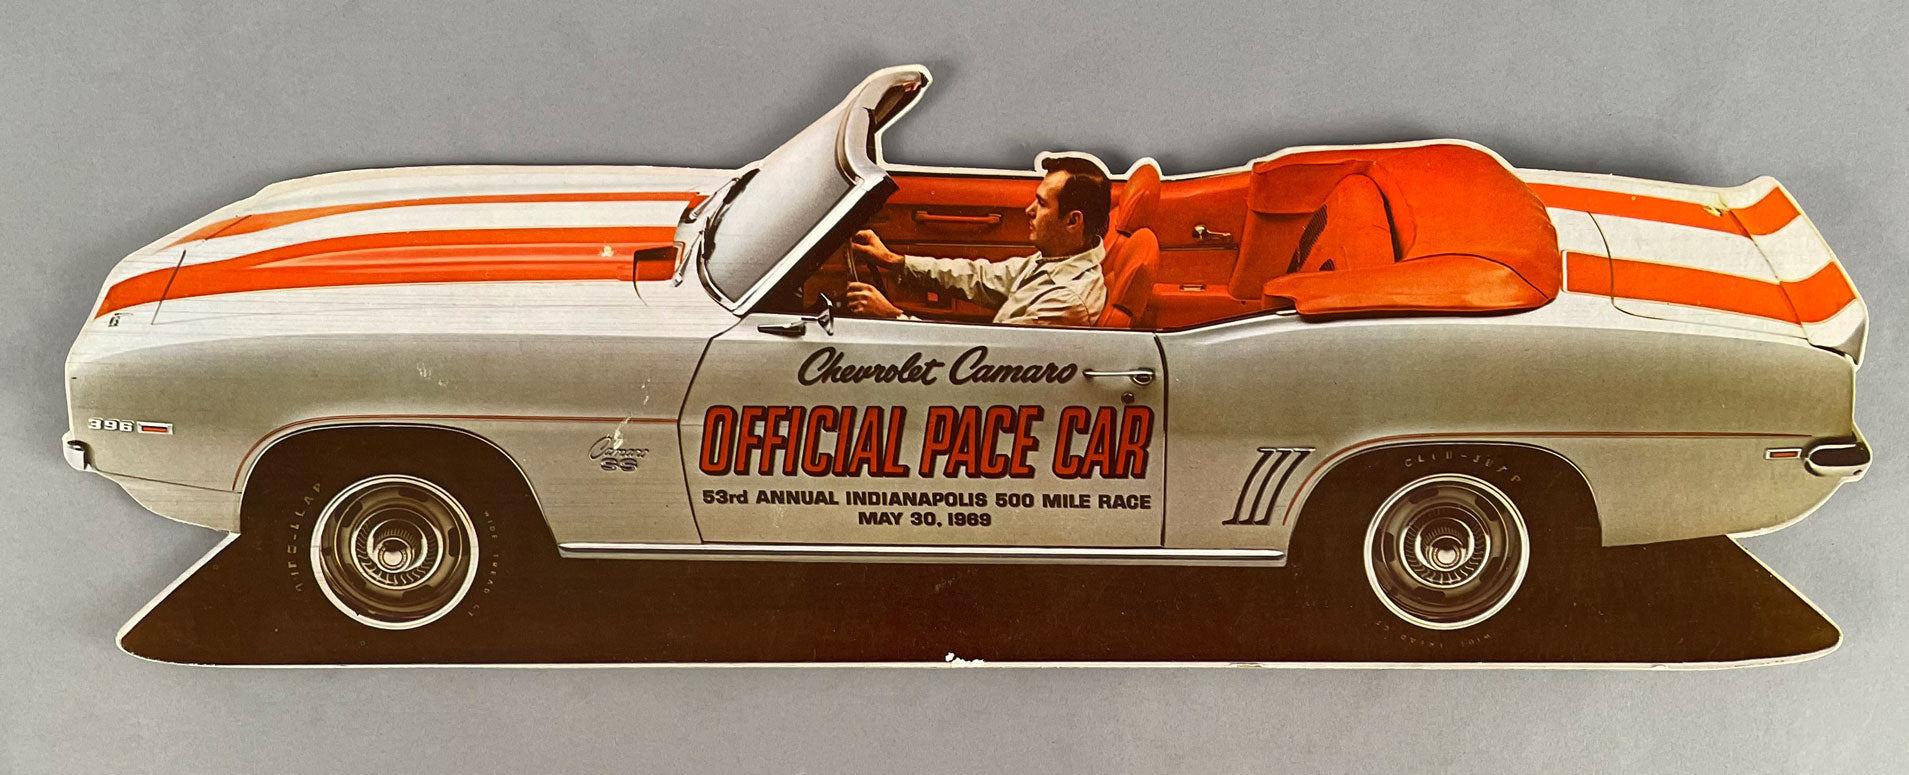 Chevrolet Camaro official pace car, dealership desk display, Indy 500